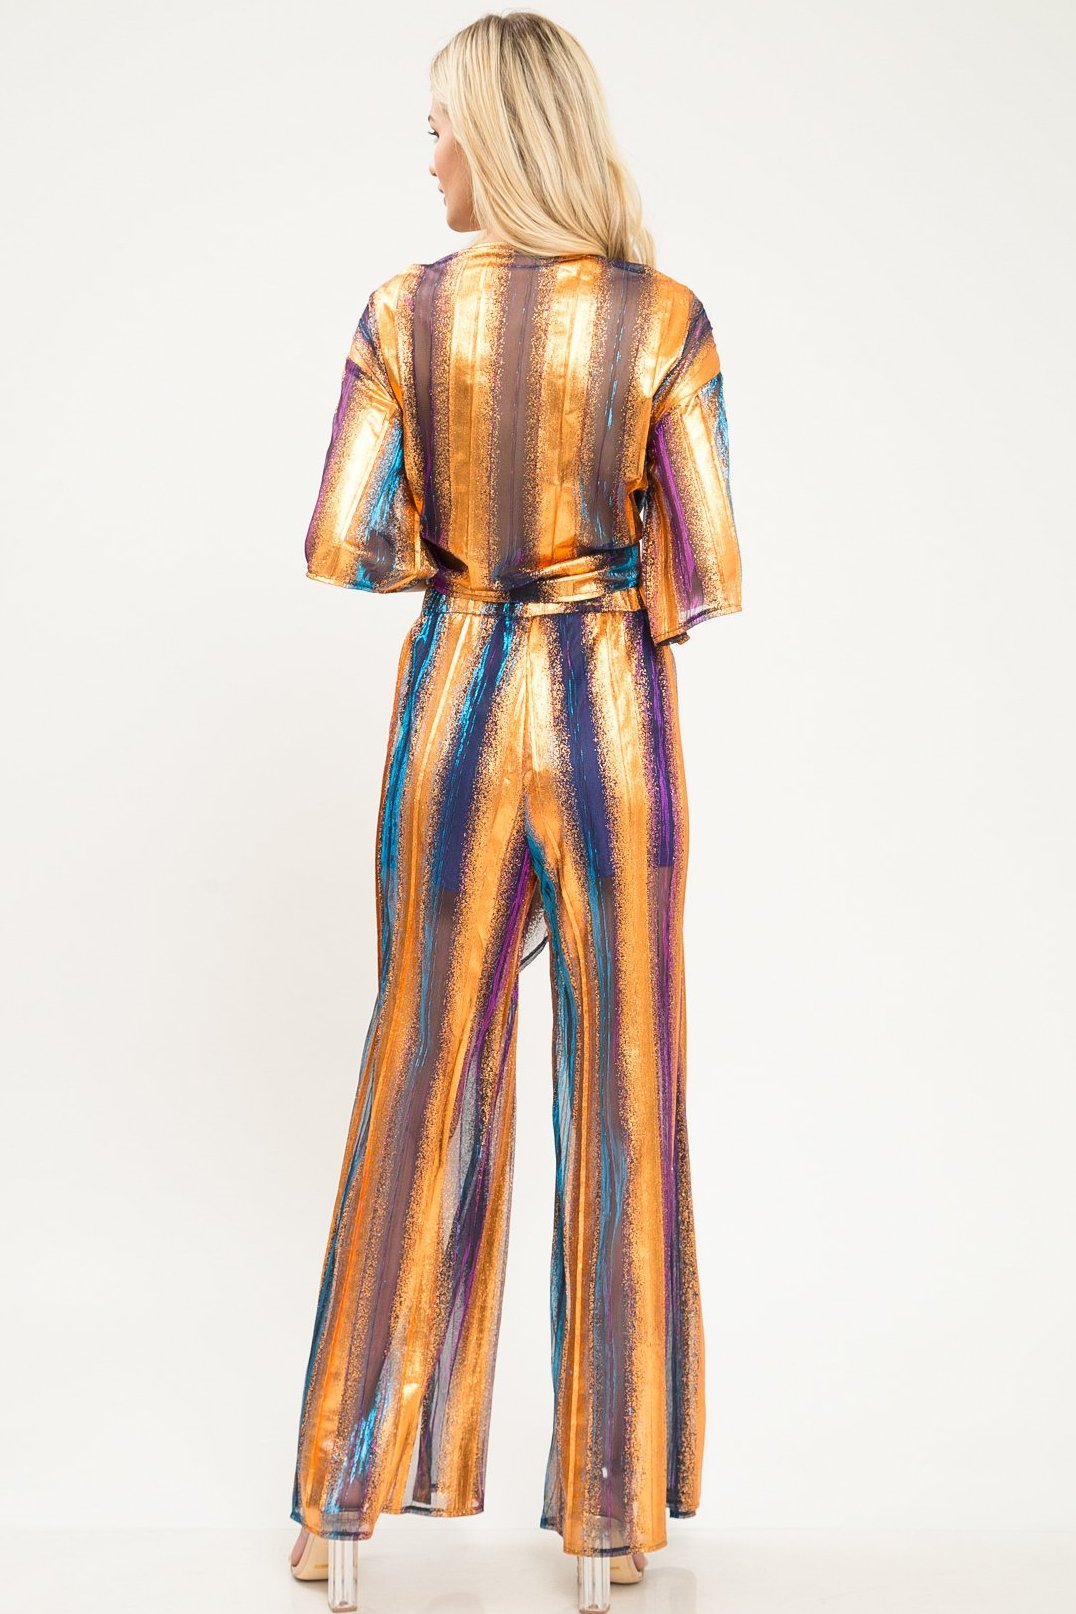 Joy Metallic Stripe Pants Set - Geegeebae